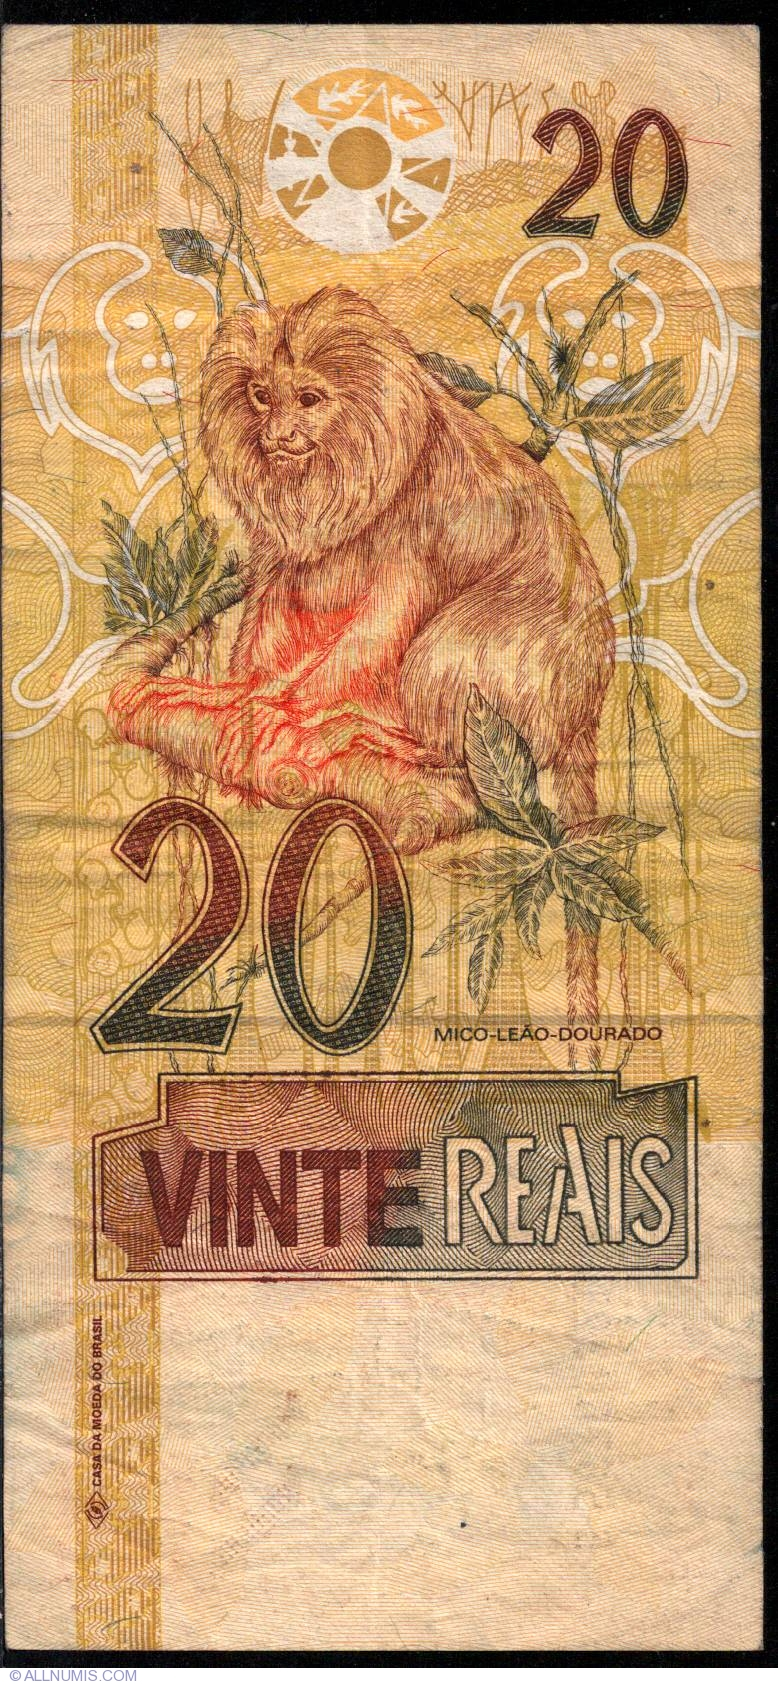 Banknote of 20 Reais ND (2002) from Brazil - ID 3265